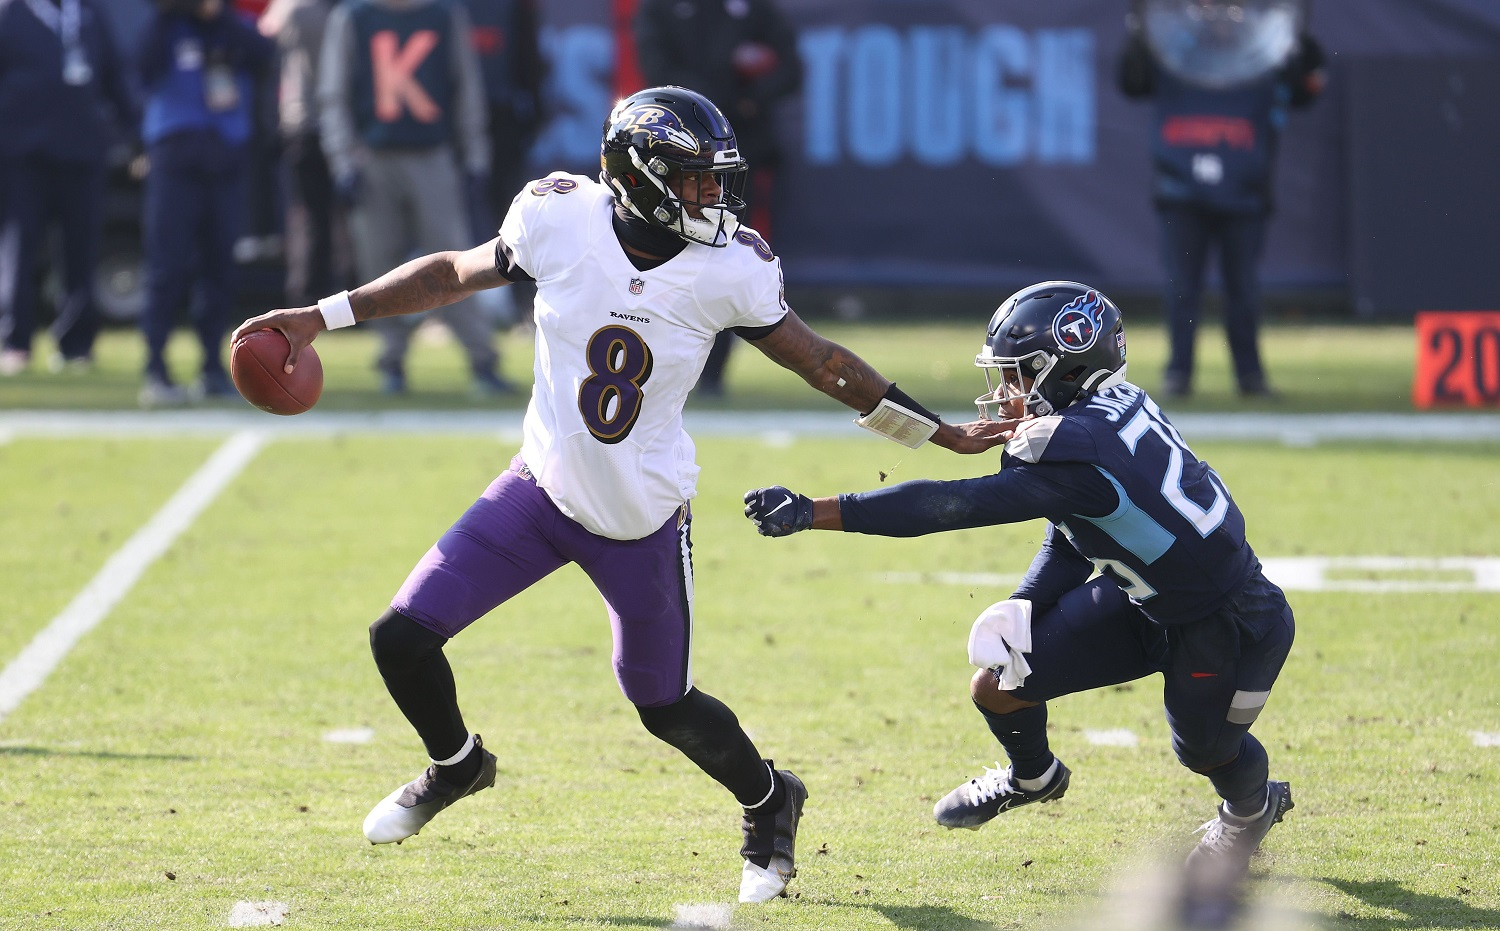 Lamar Jackson scrambles against the Tennessee Titans in the wild-card round of the NFL playoffs on Jan. 10, 2021. | Andy Lyons/Getty Images